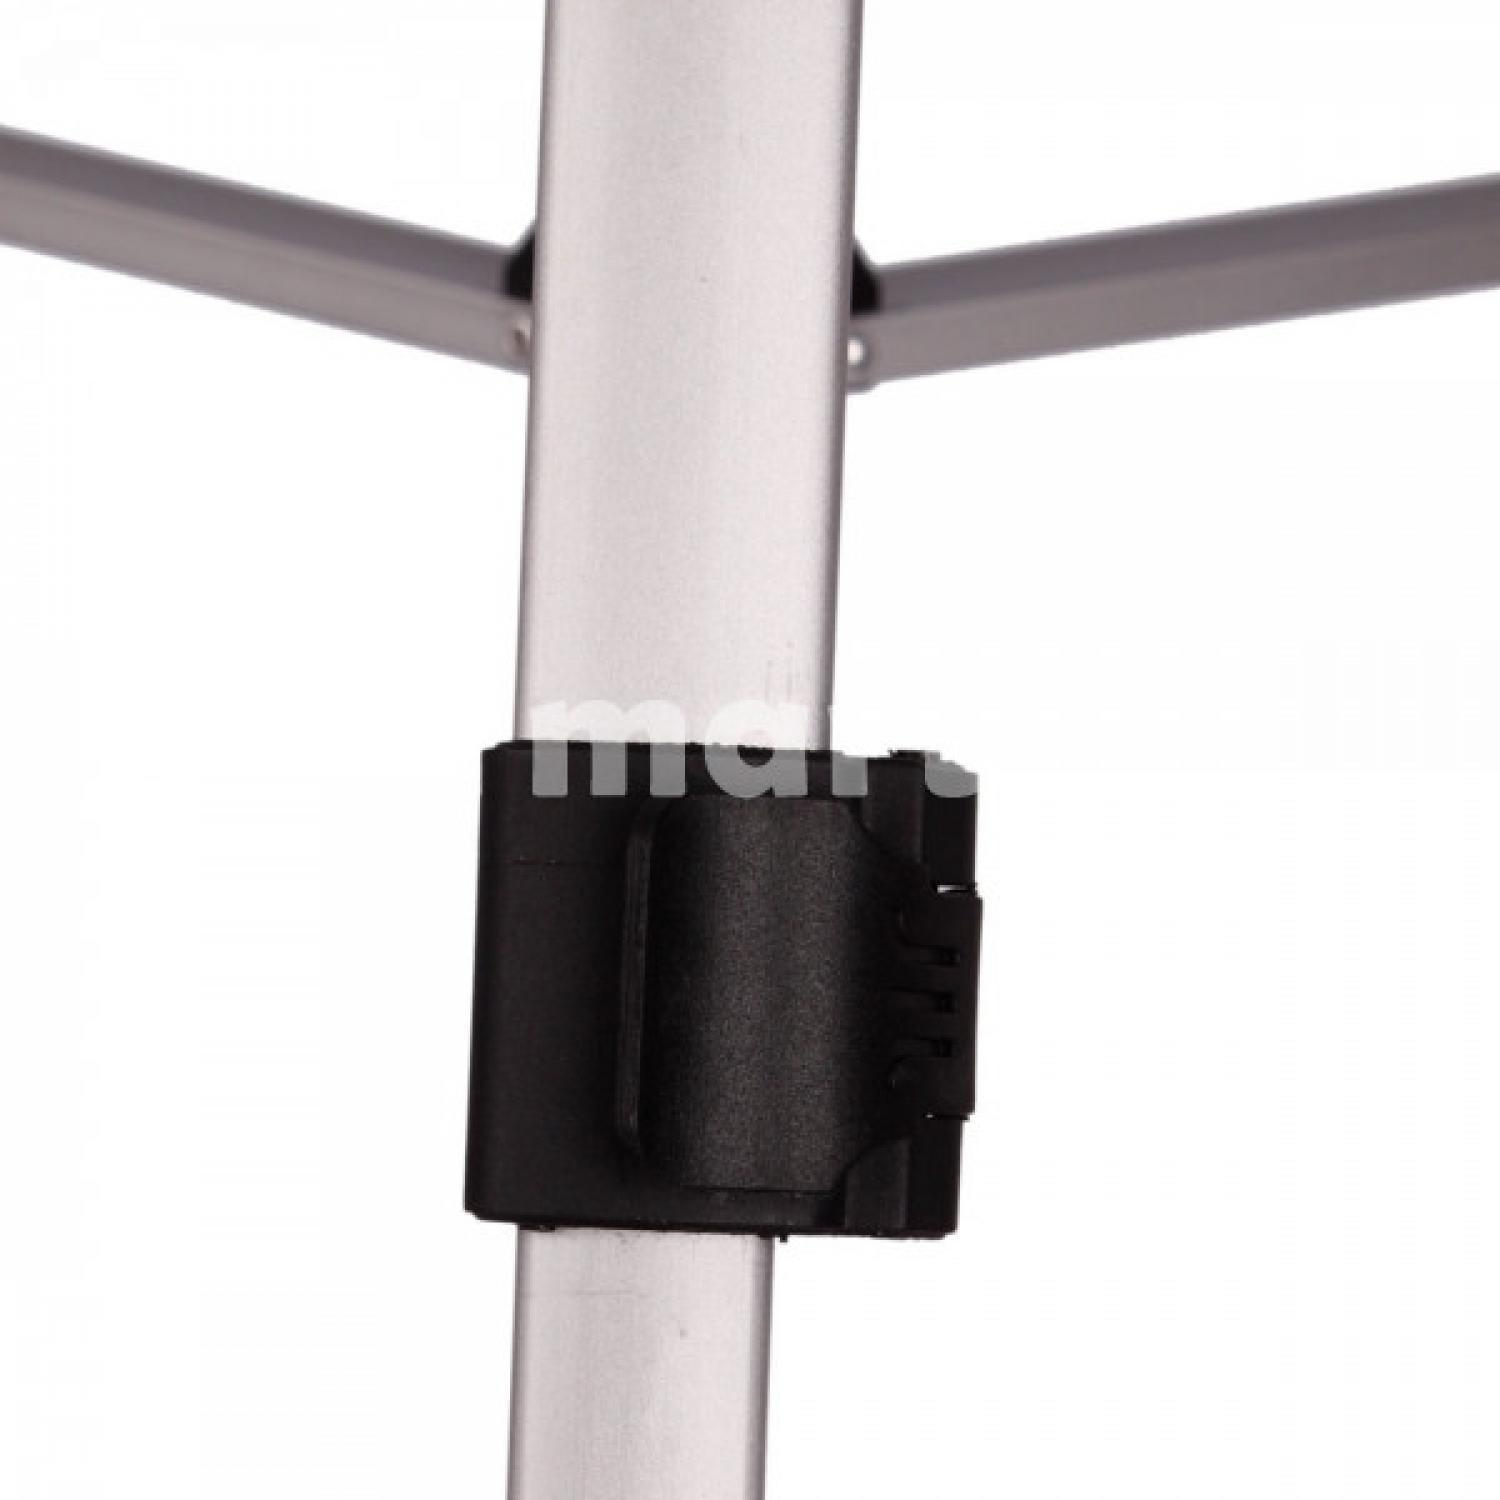 Fitur Weifeng Portable Lightweight Tripod Stand 3 Section Wt 330a 4 Aluminium Legs With Brace Mini